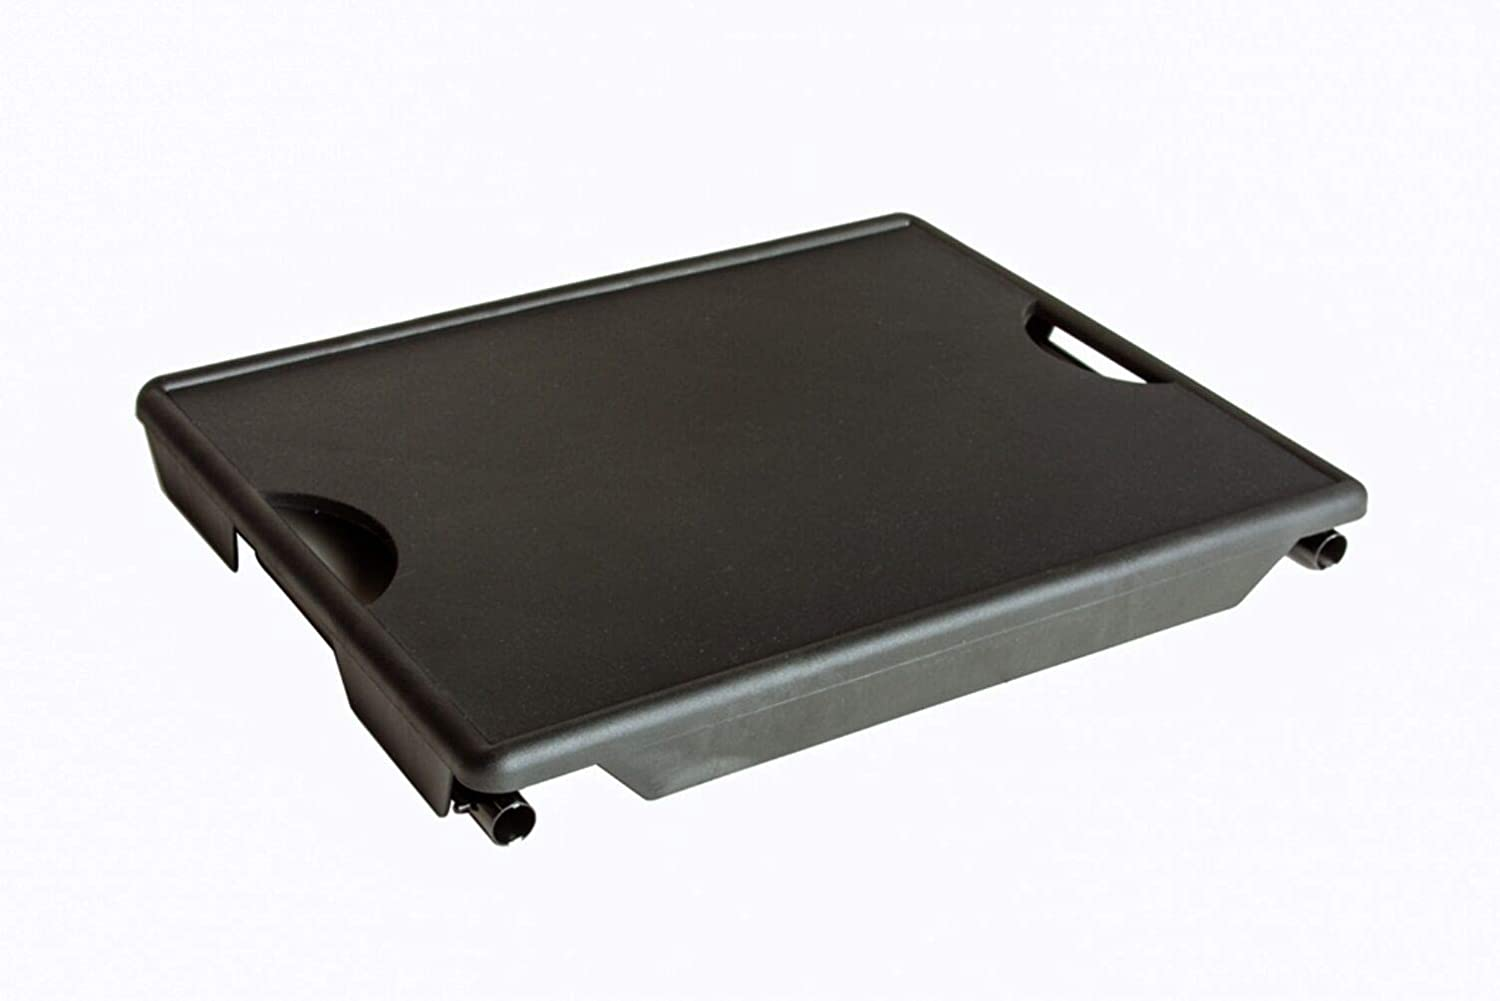 TV Tray Table My Comfy Portable and Foldable Bedside Table